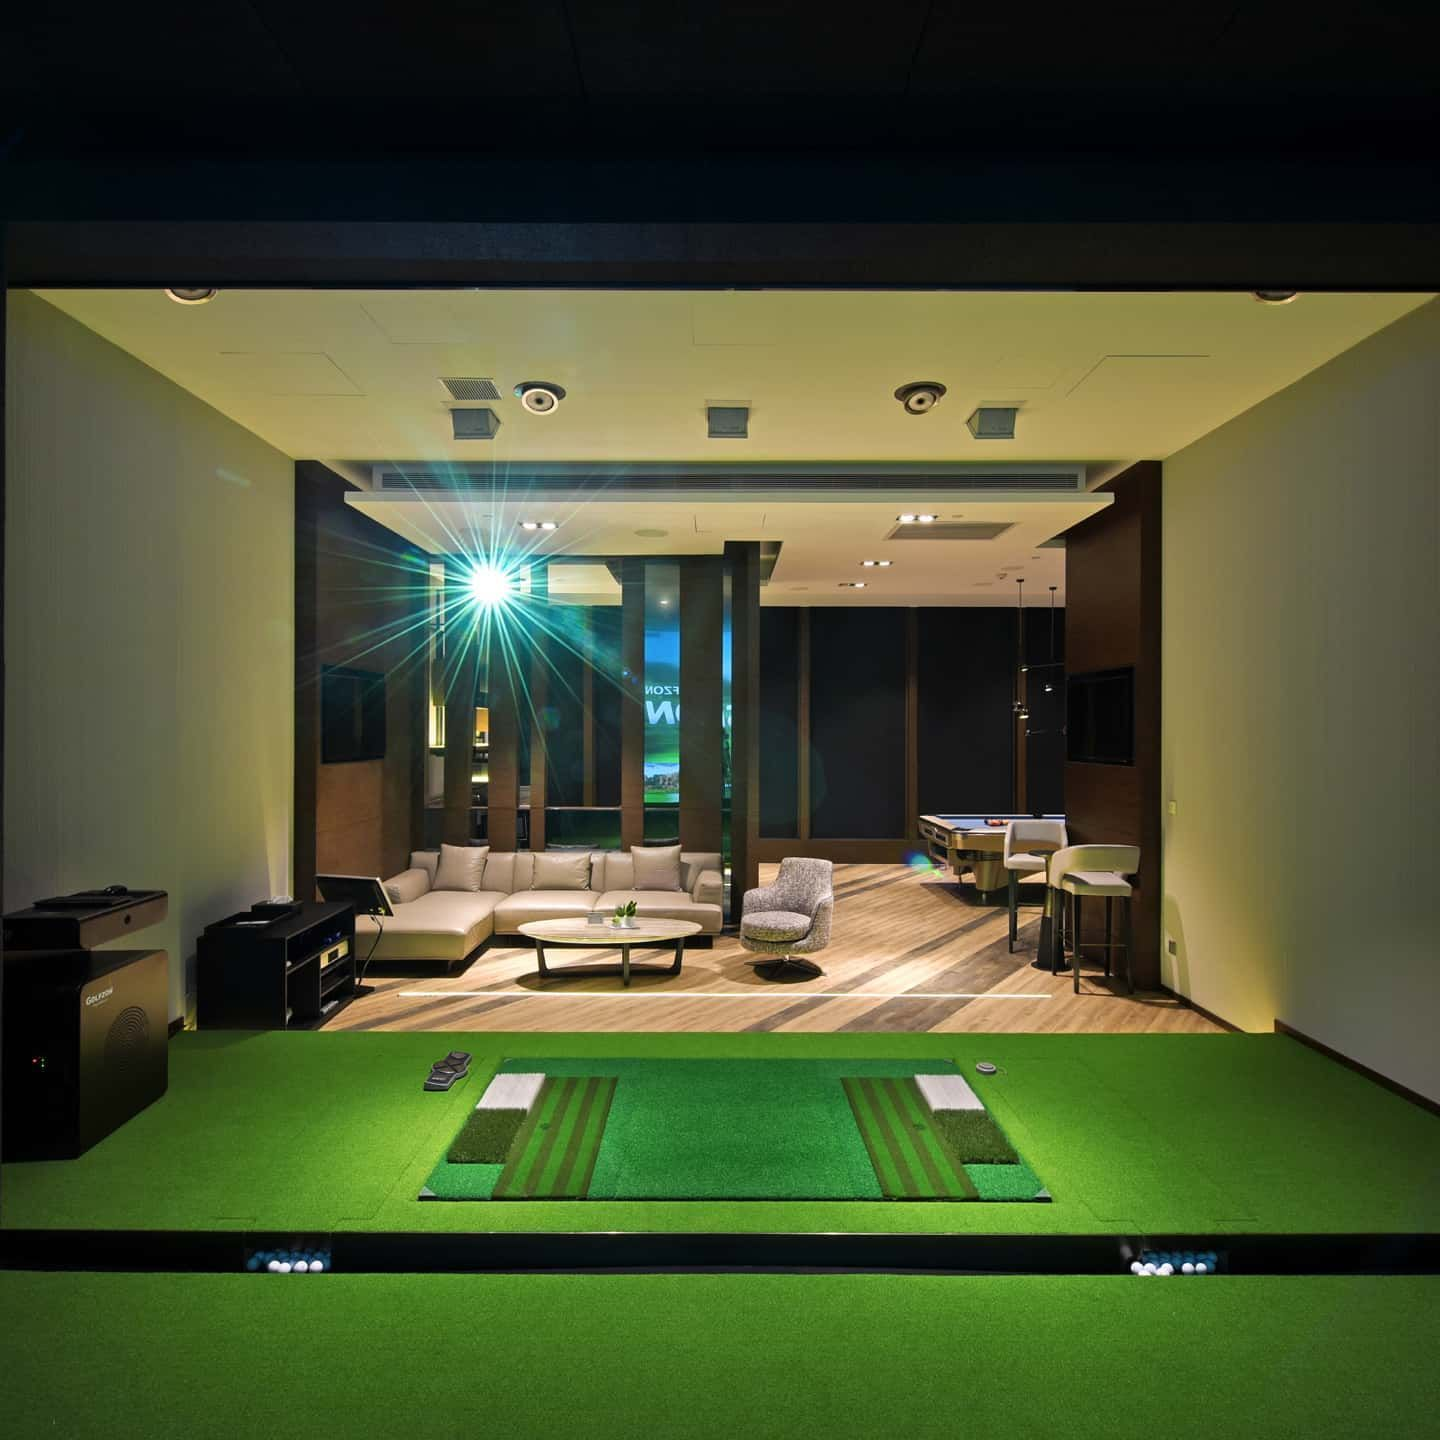 Turn Your Basement Into A Golf Room A Man Cave Comes Complete With Golfzon Simulator Golfzon Golf Golfsimulator Indoorgolf Golfing Dreamhome Drea